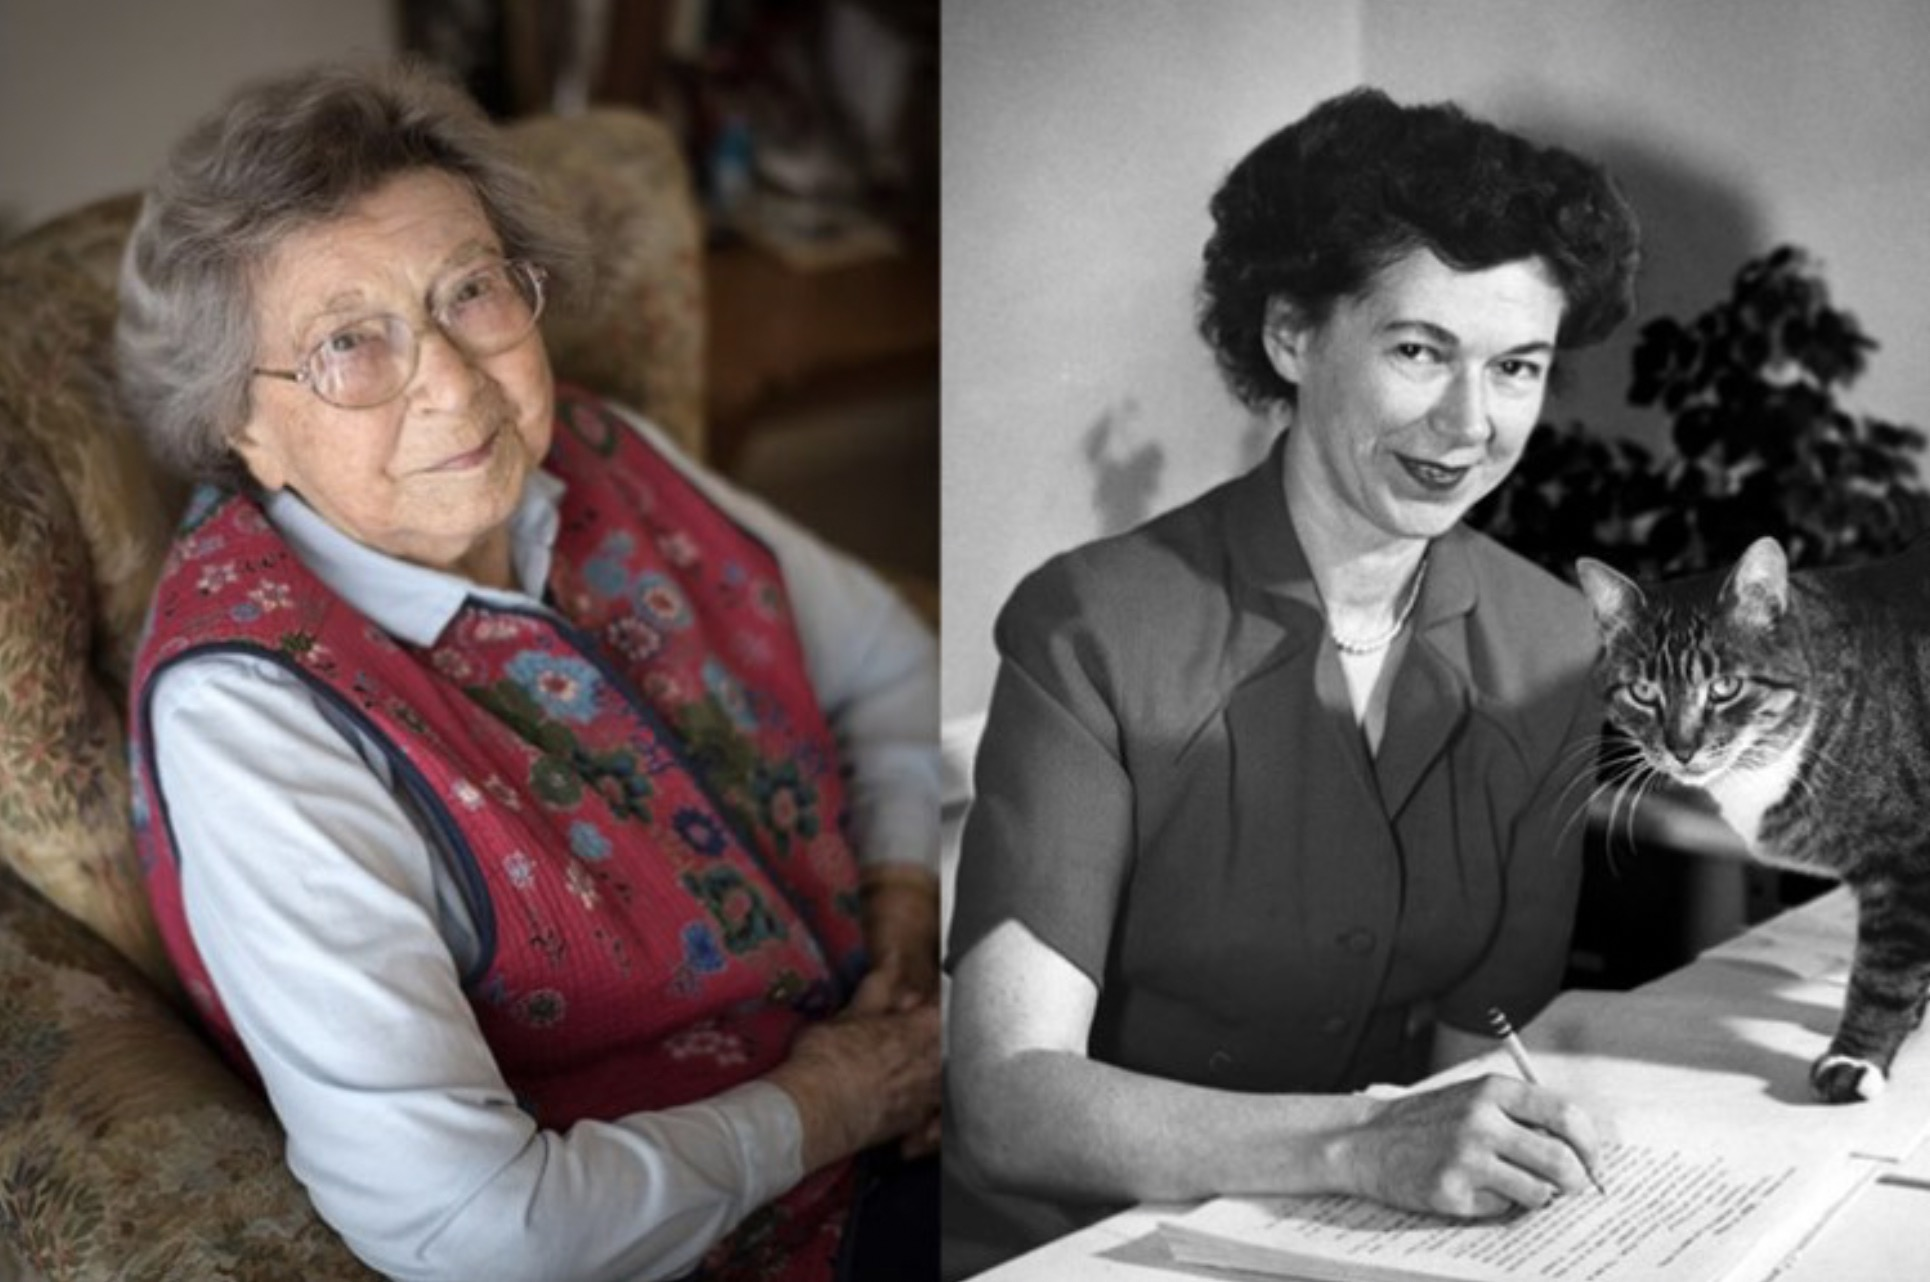 BEVERLY CLEARY 101 YEARS OLD